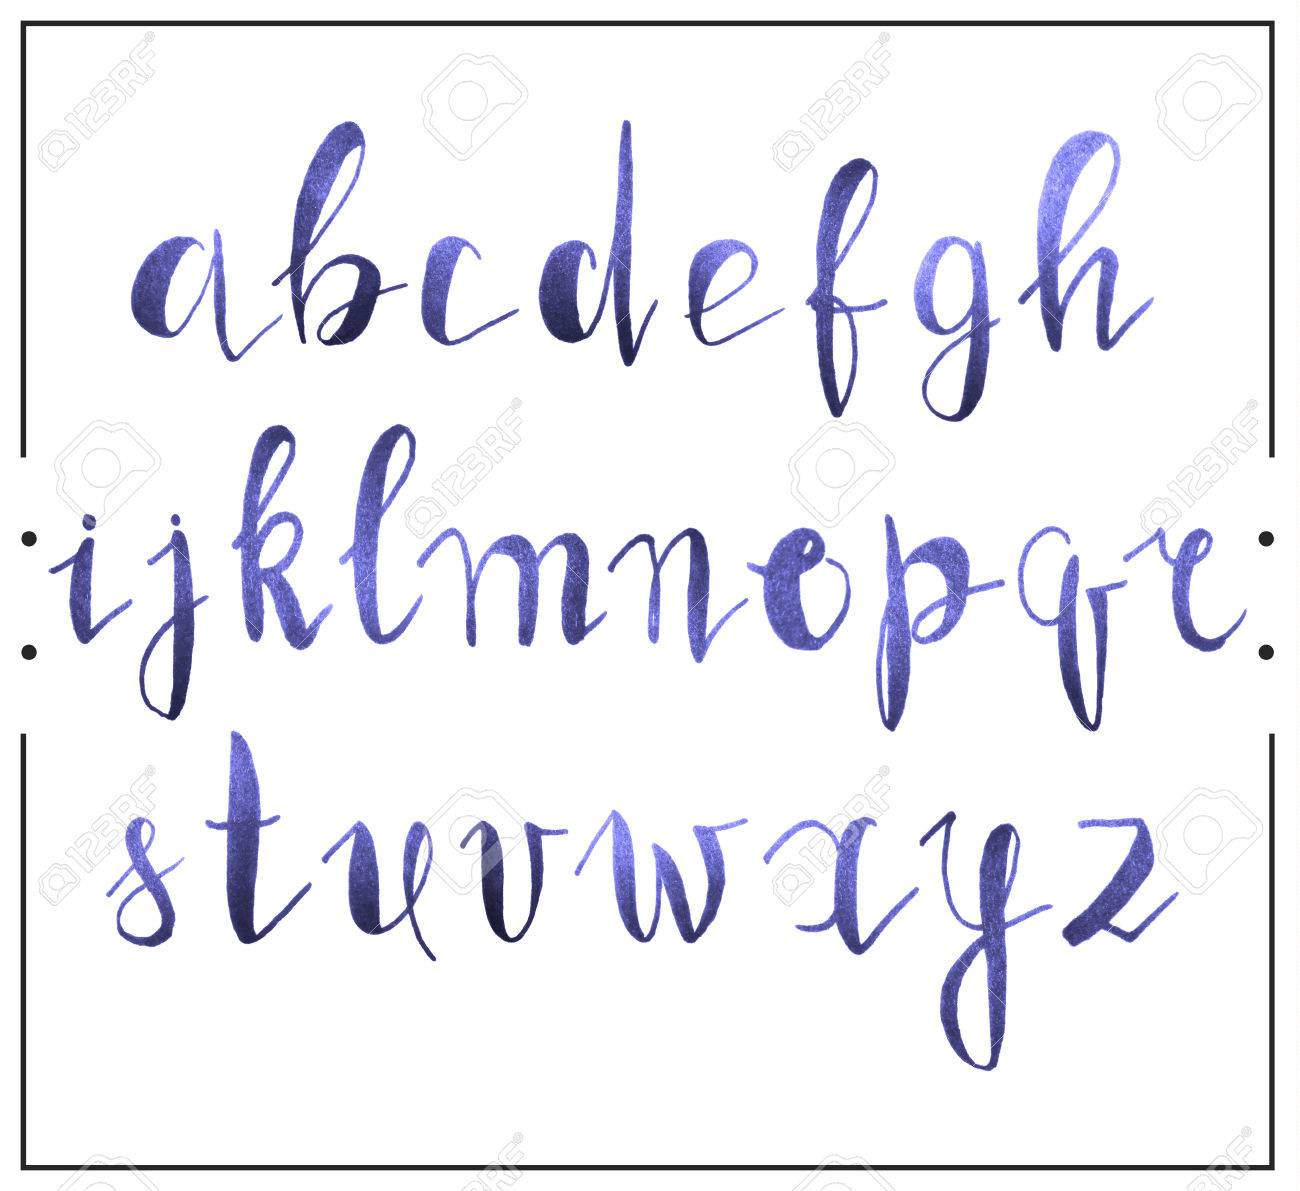 Handwritten Calligraphic Font Alphabet Written By A Marker With Realistic Texture Uppercase